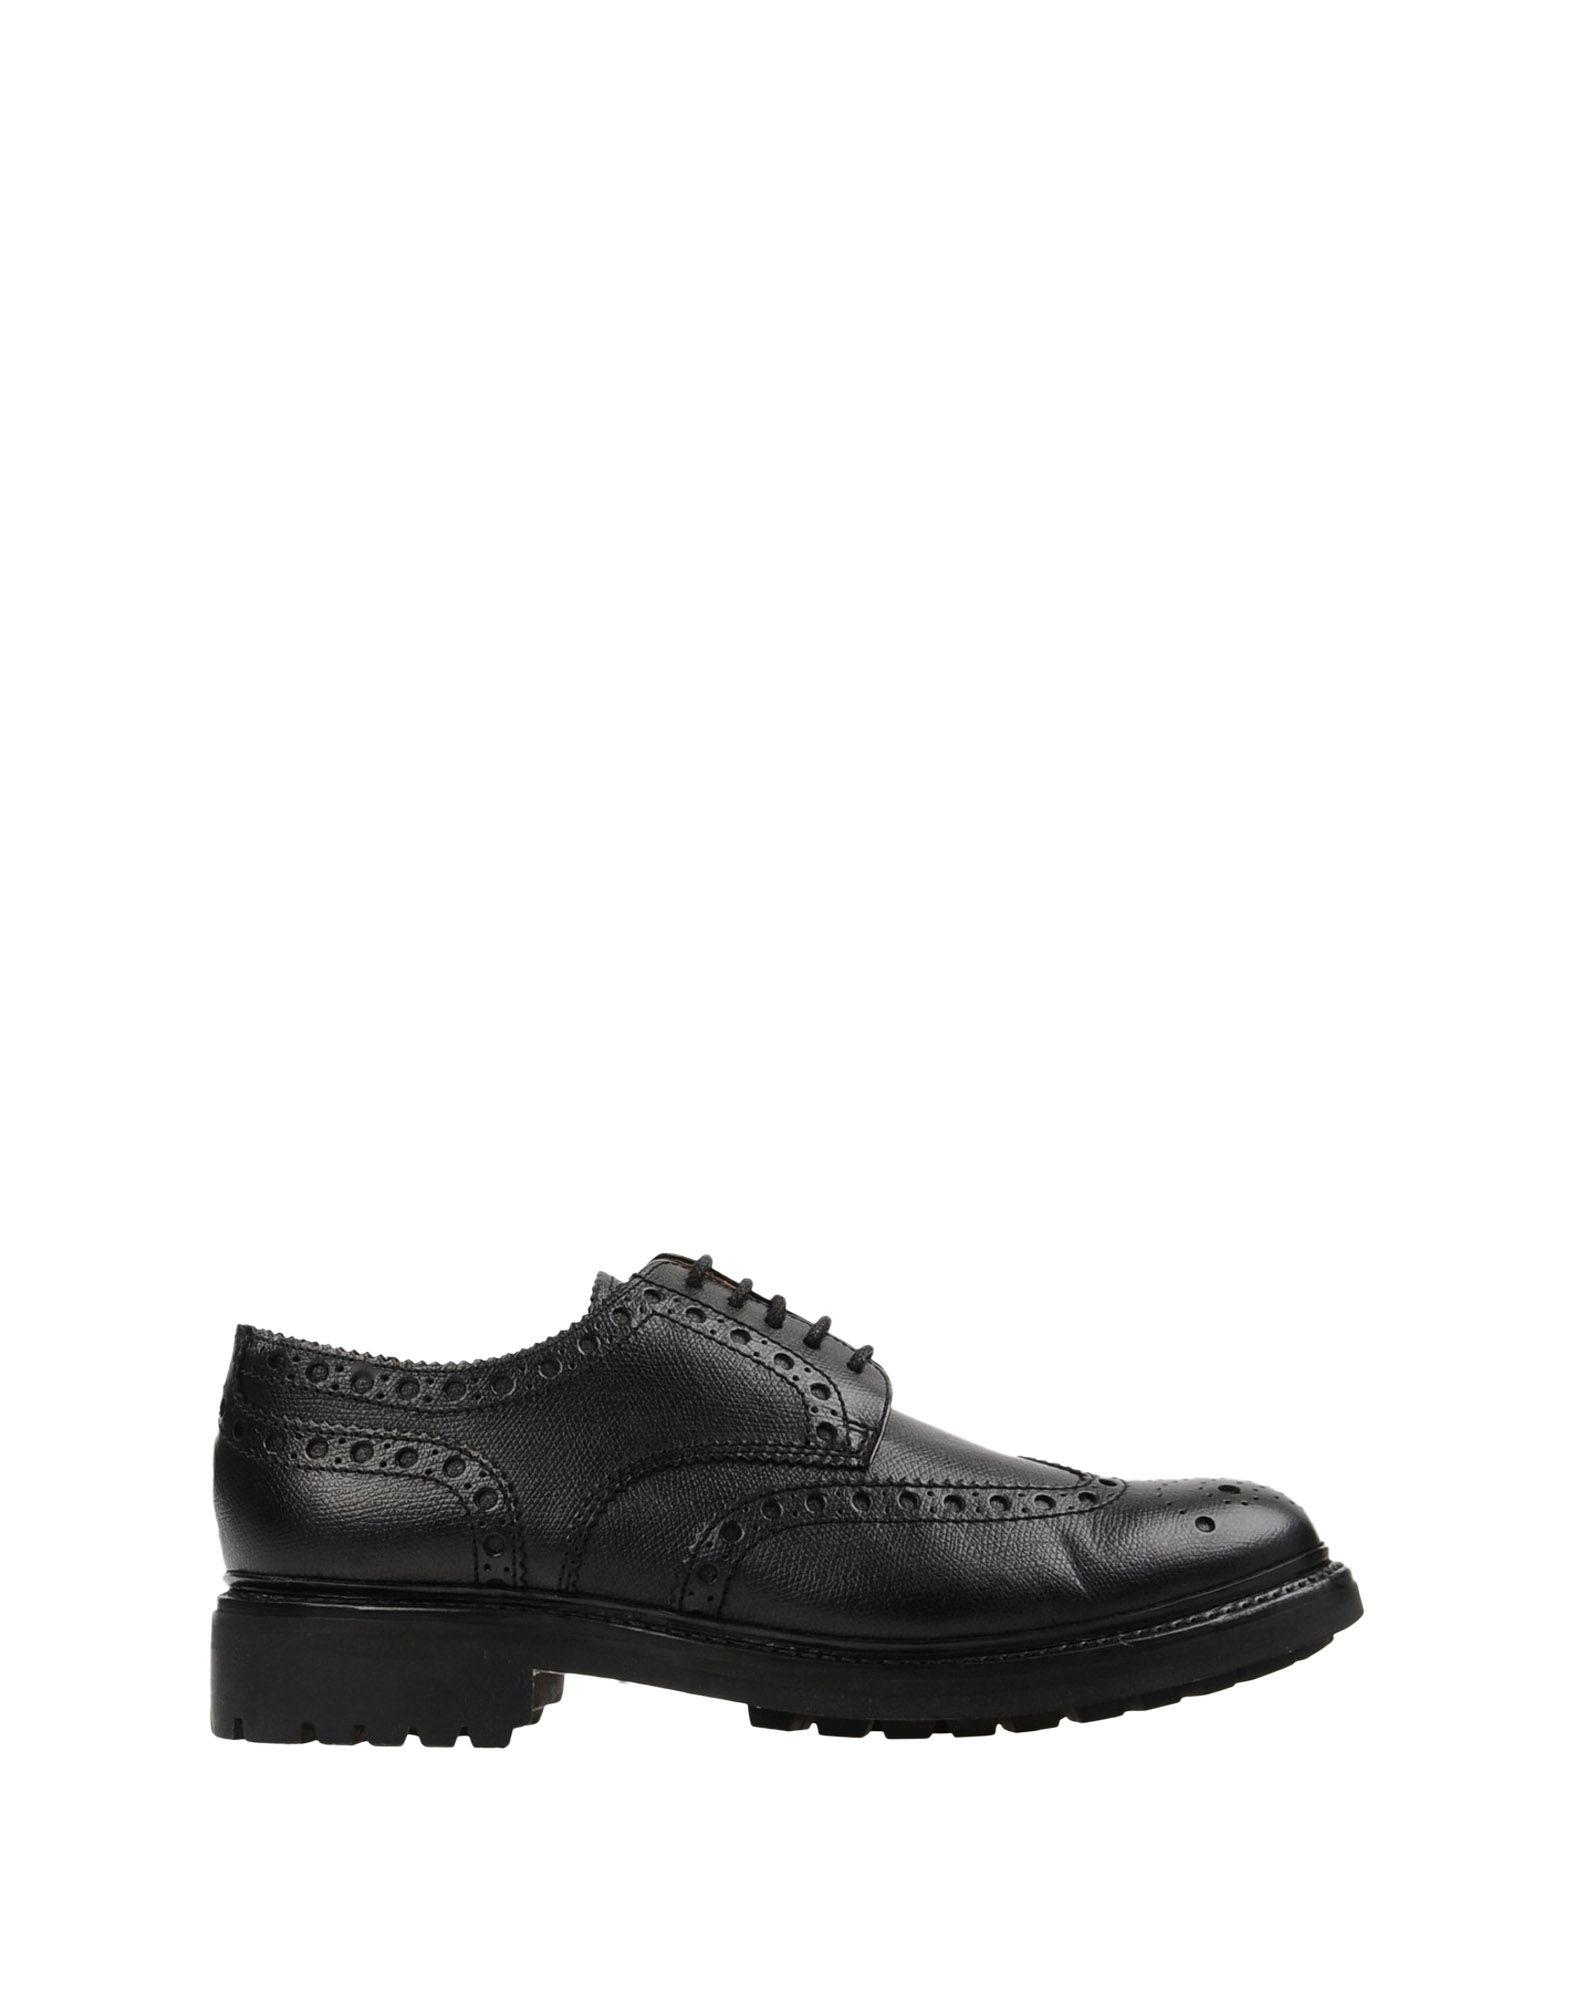 360438a523fc Lyst - Grenson Lace-up Shoe in Black for Men